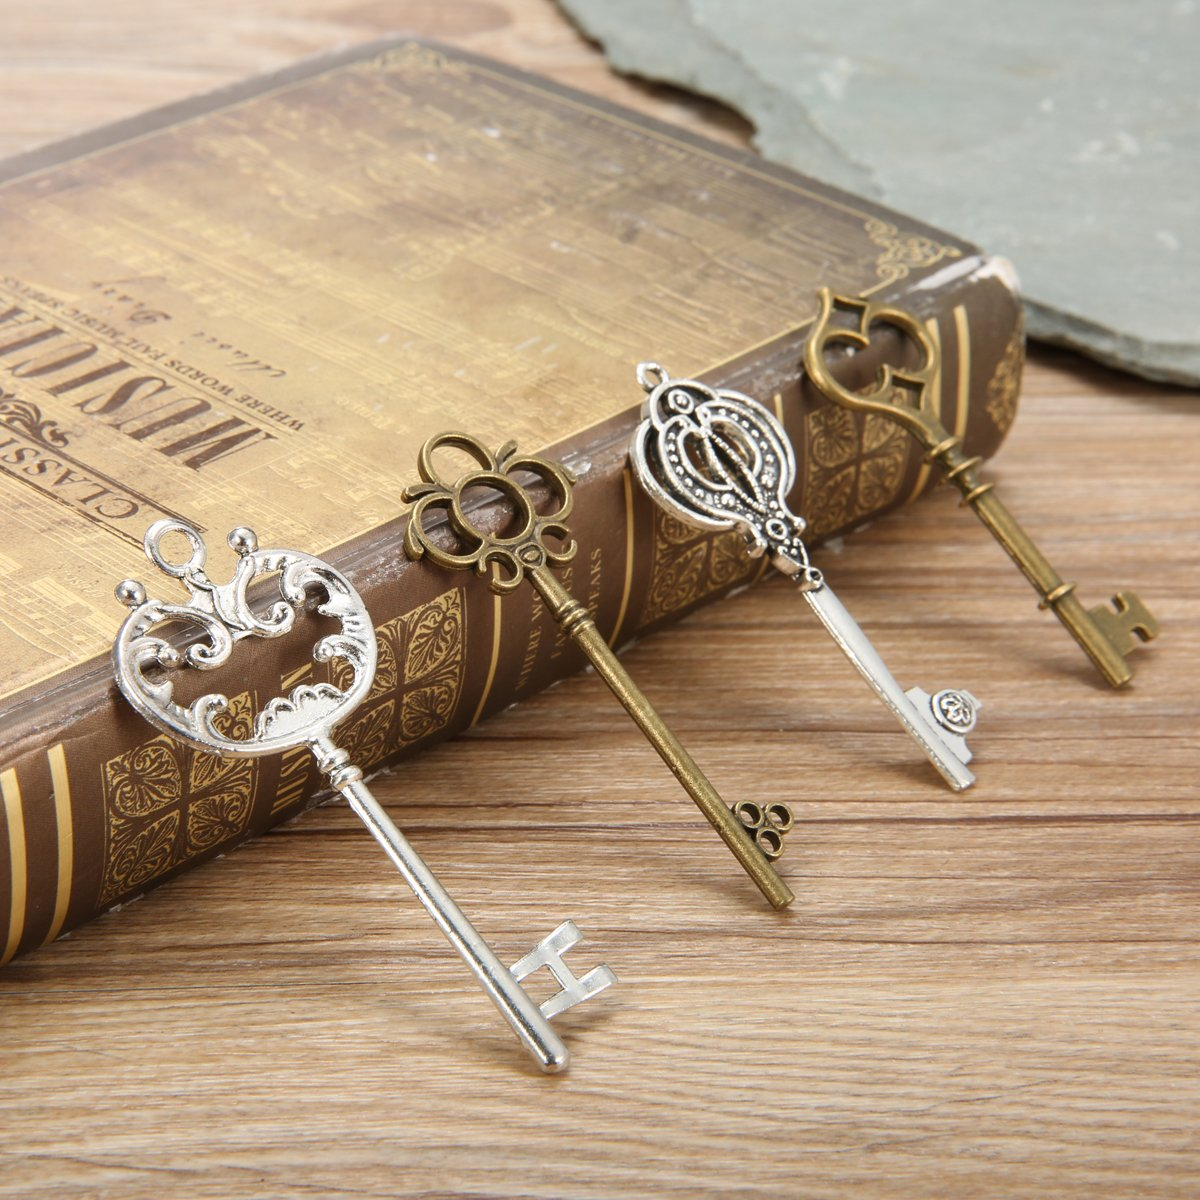 Jeteven 80pcs Vintage Skeleton Key Charm Set with 5m Leather Rope and 5m Chain Necklace Bracelets Pendants Jewelry DIY Making Supplies Wedding Favors